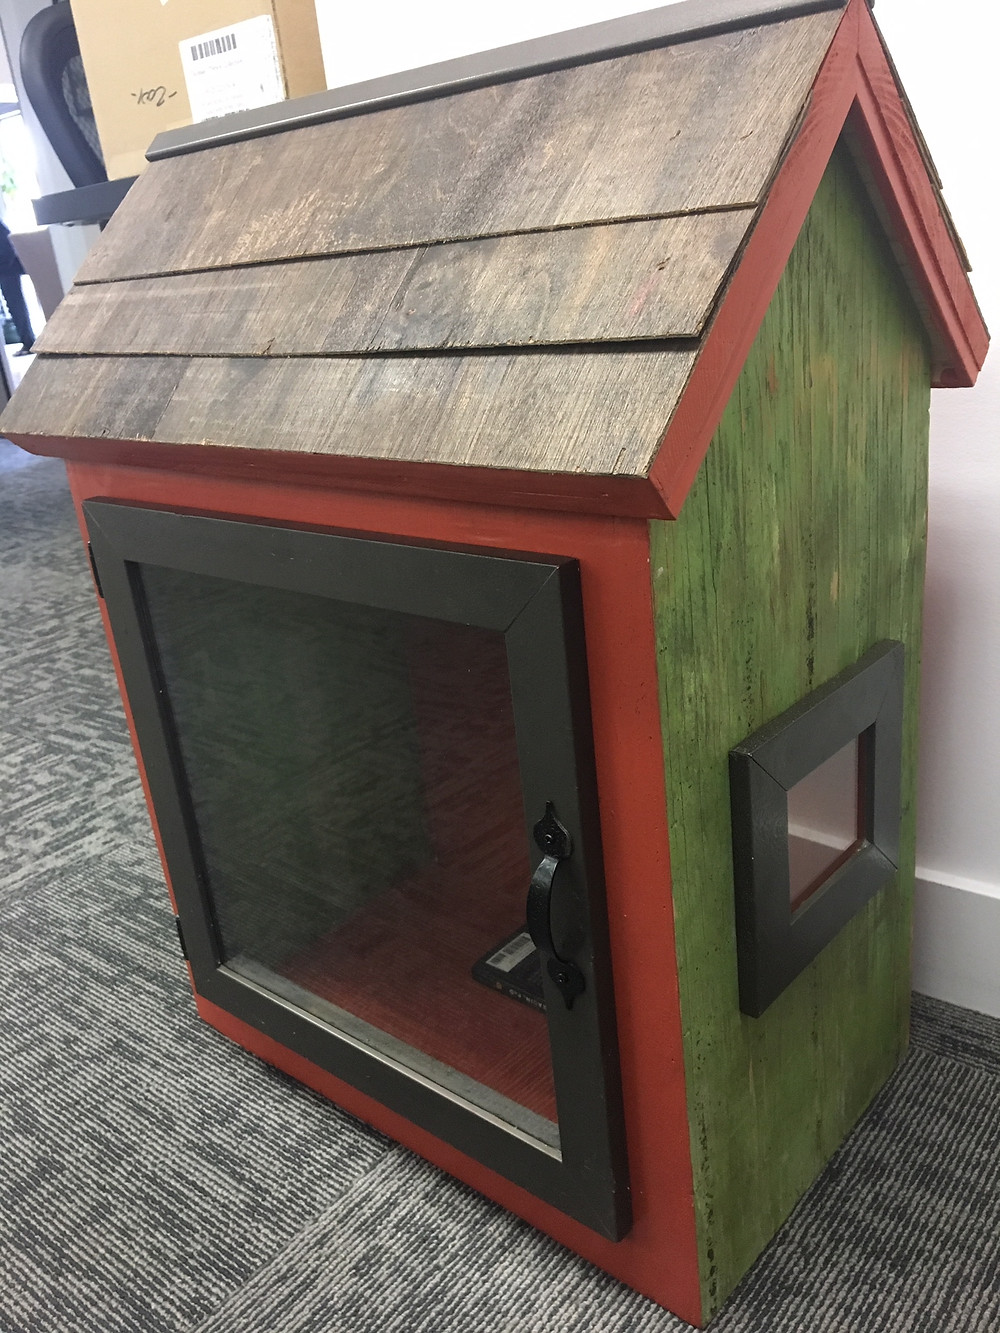 A Little Free Library built by Custom Design & Construction